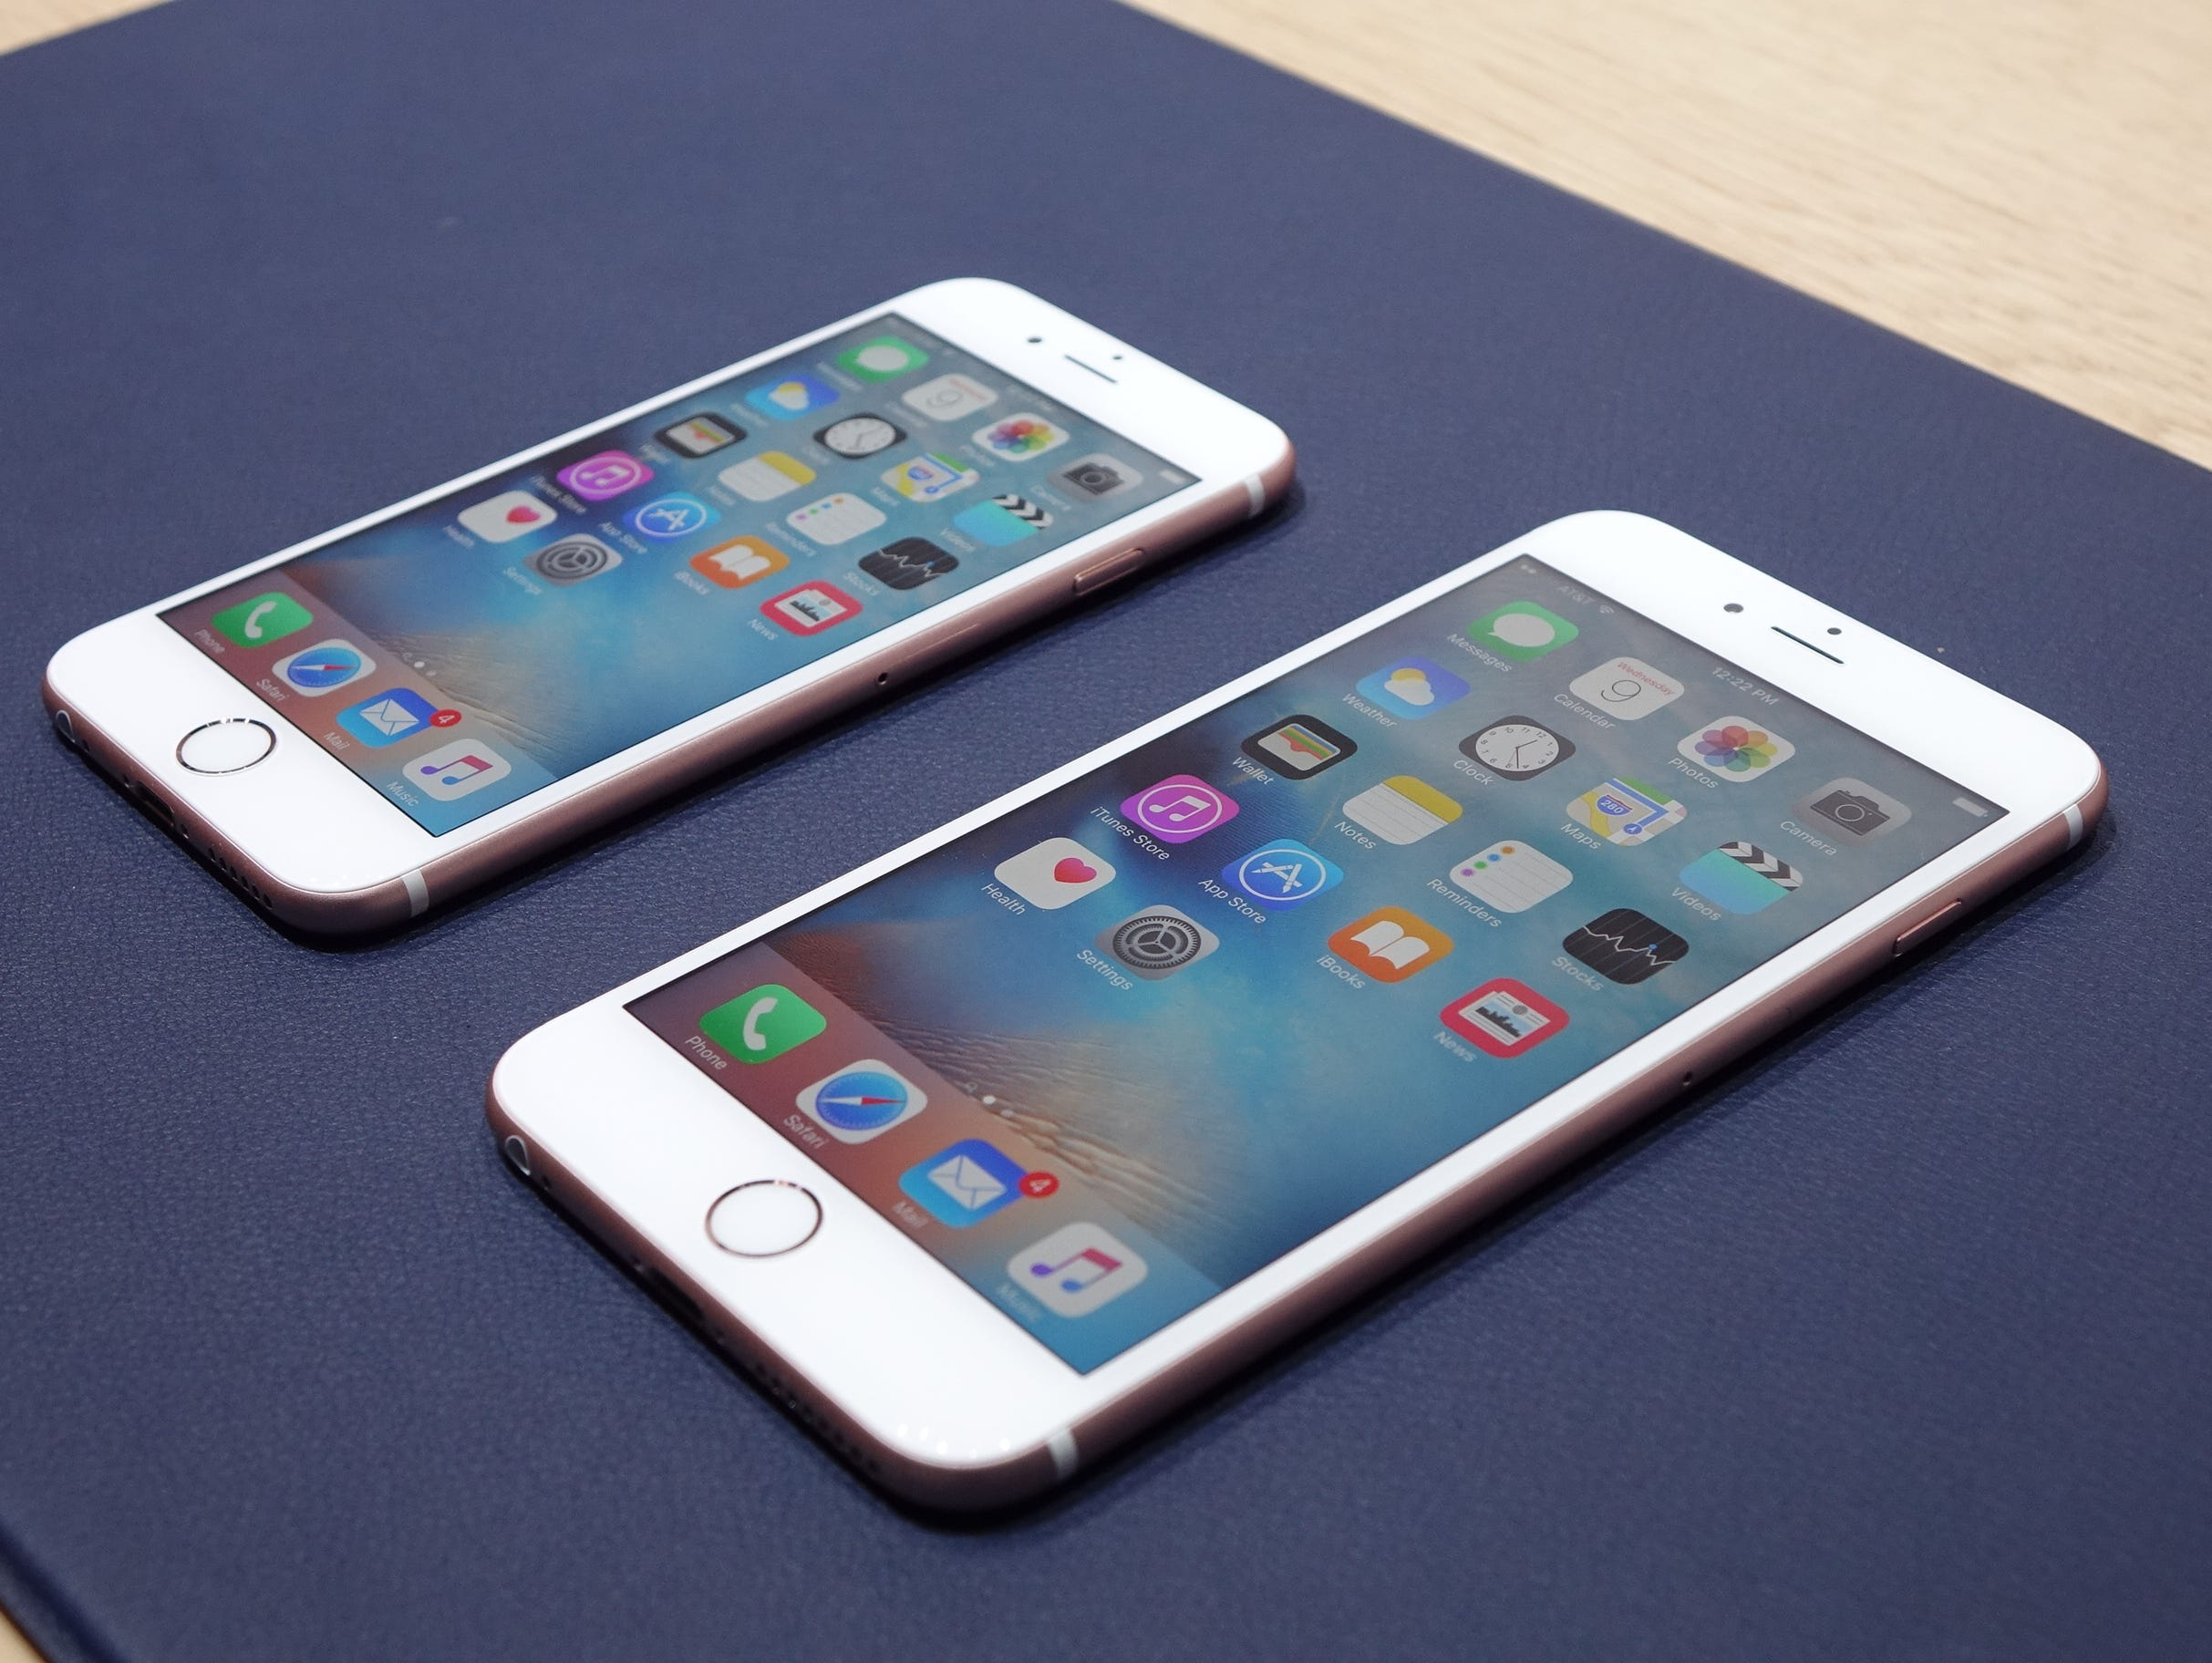 the iPhone 6S and 6S Plus on display during Apple's event.